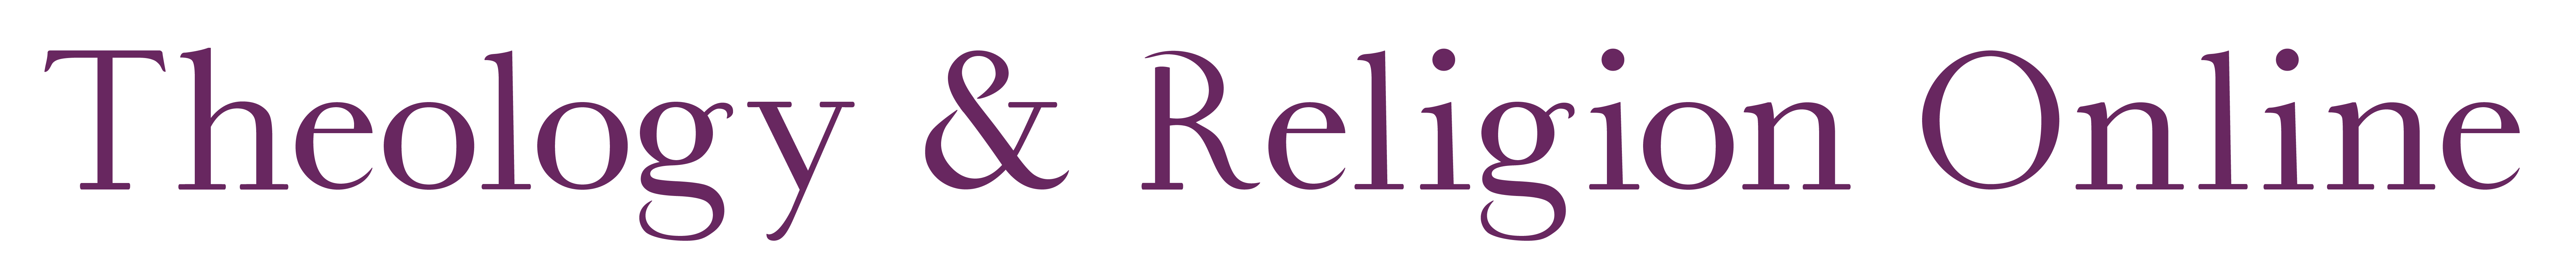 Theology and Religion Online Logo